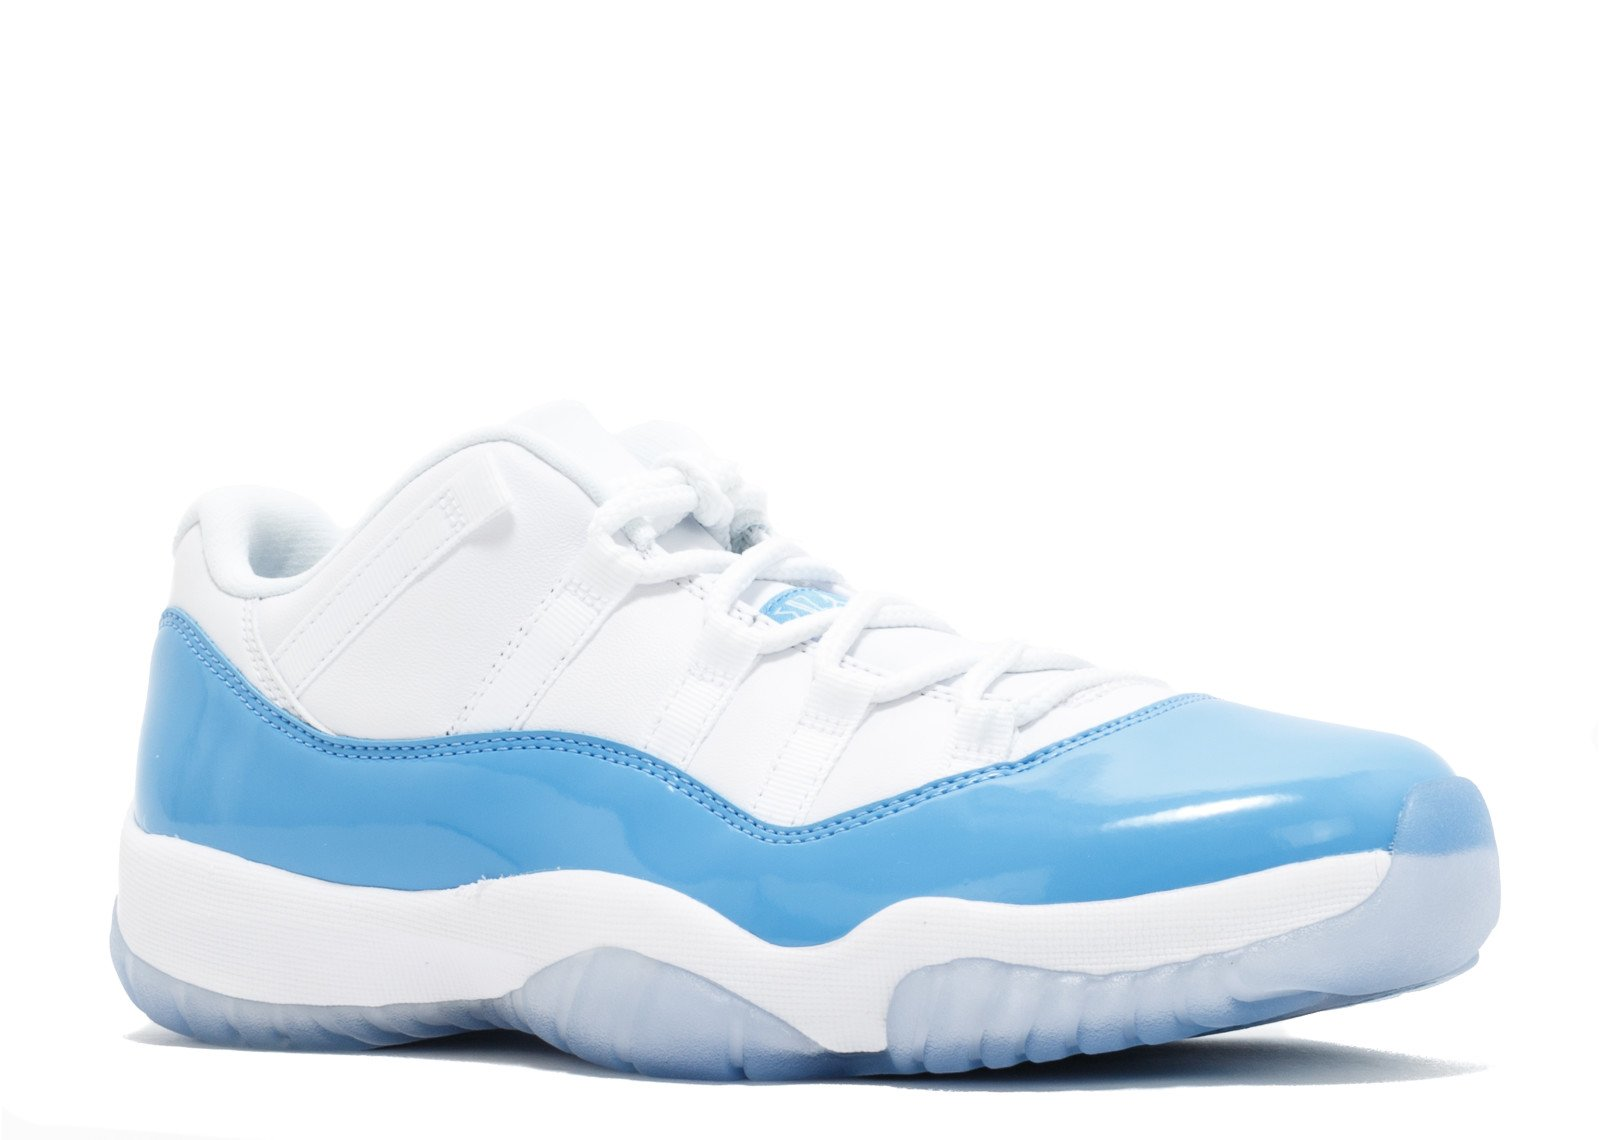 6f1f7359ea8f Galleon - Nike Air Jordan 11 XI Low UNC 528895-106 US Men Size 15